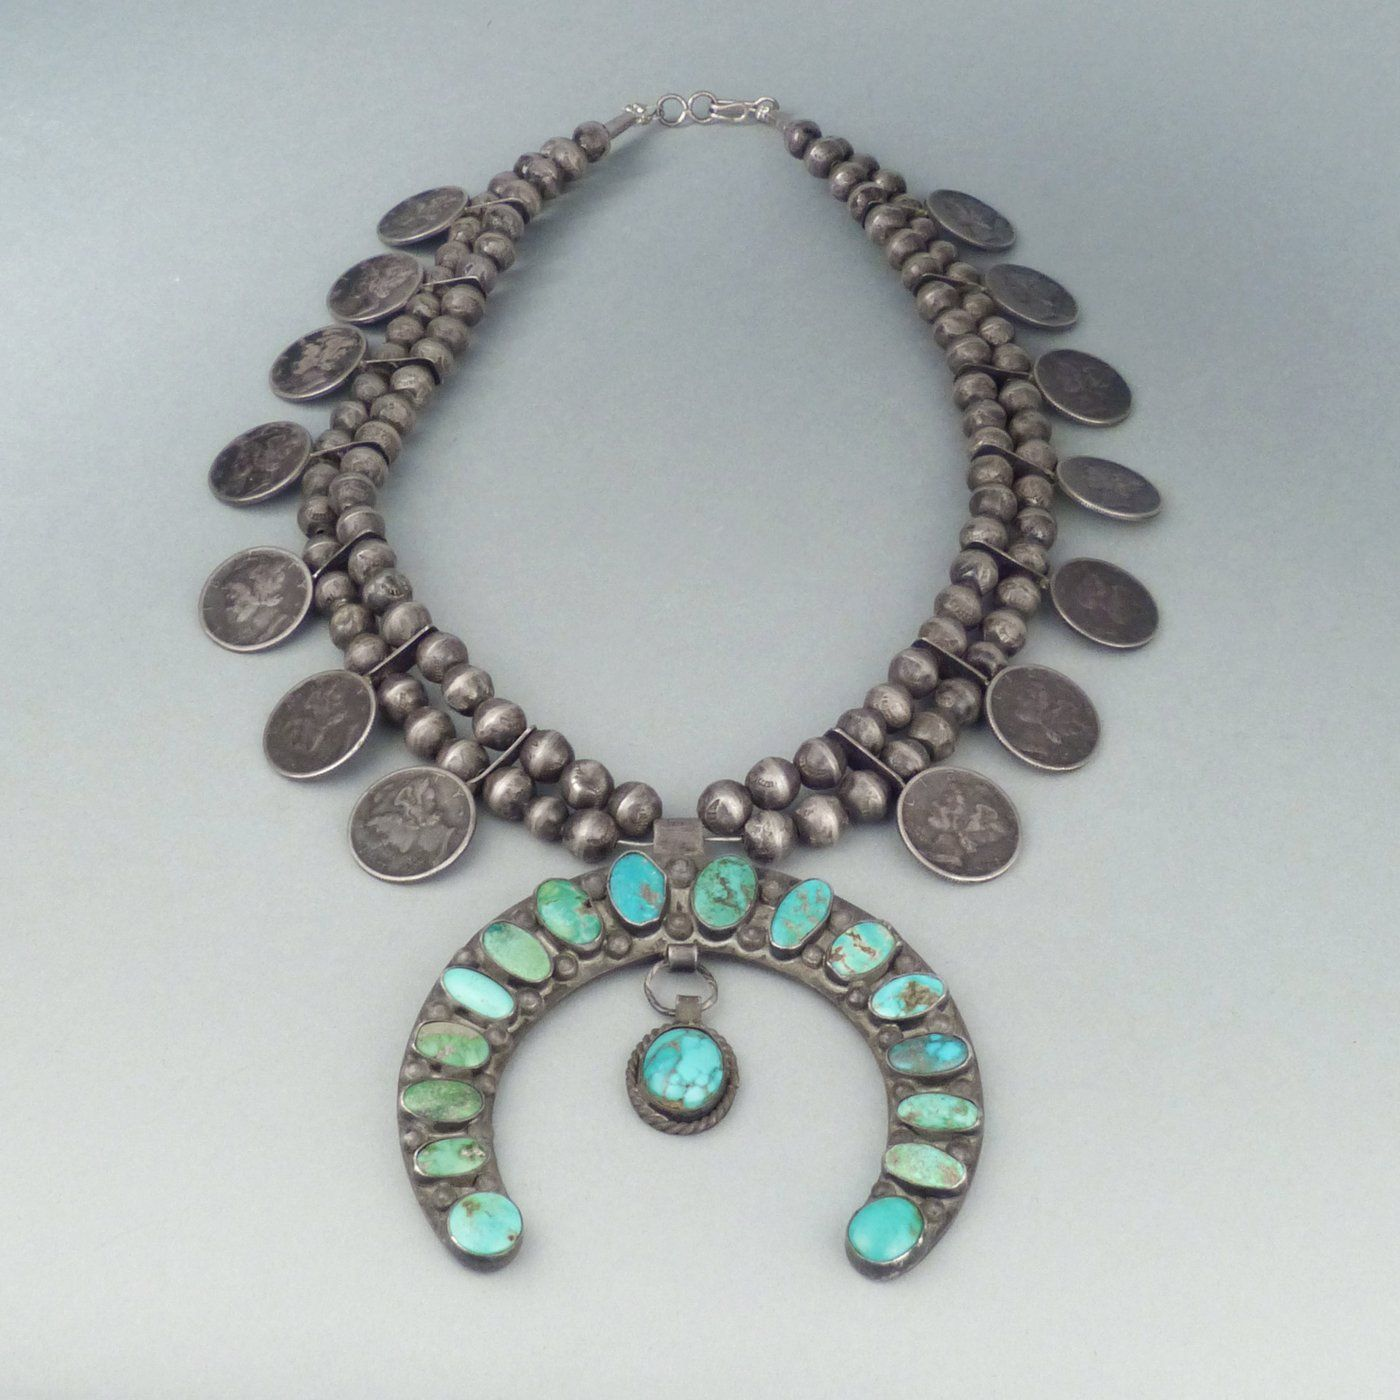 Navajo Silver Bead Necklace with Coins and Turquoise Naja, c.1940 ...